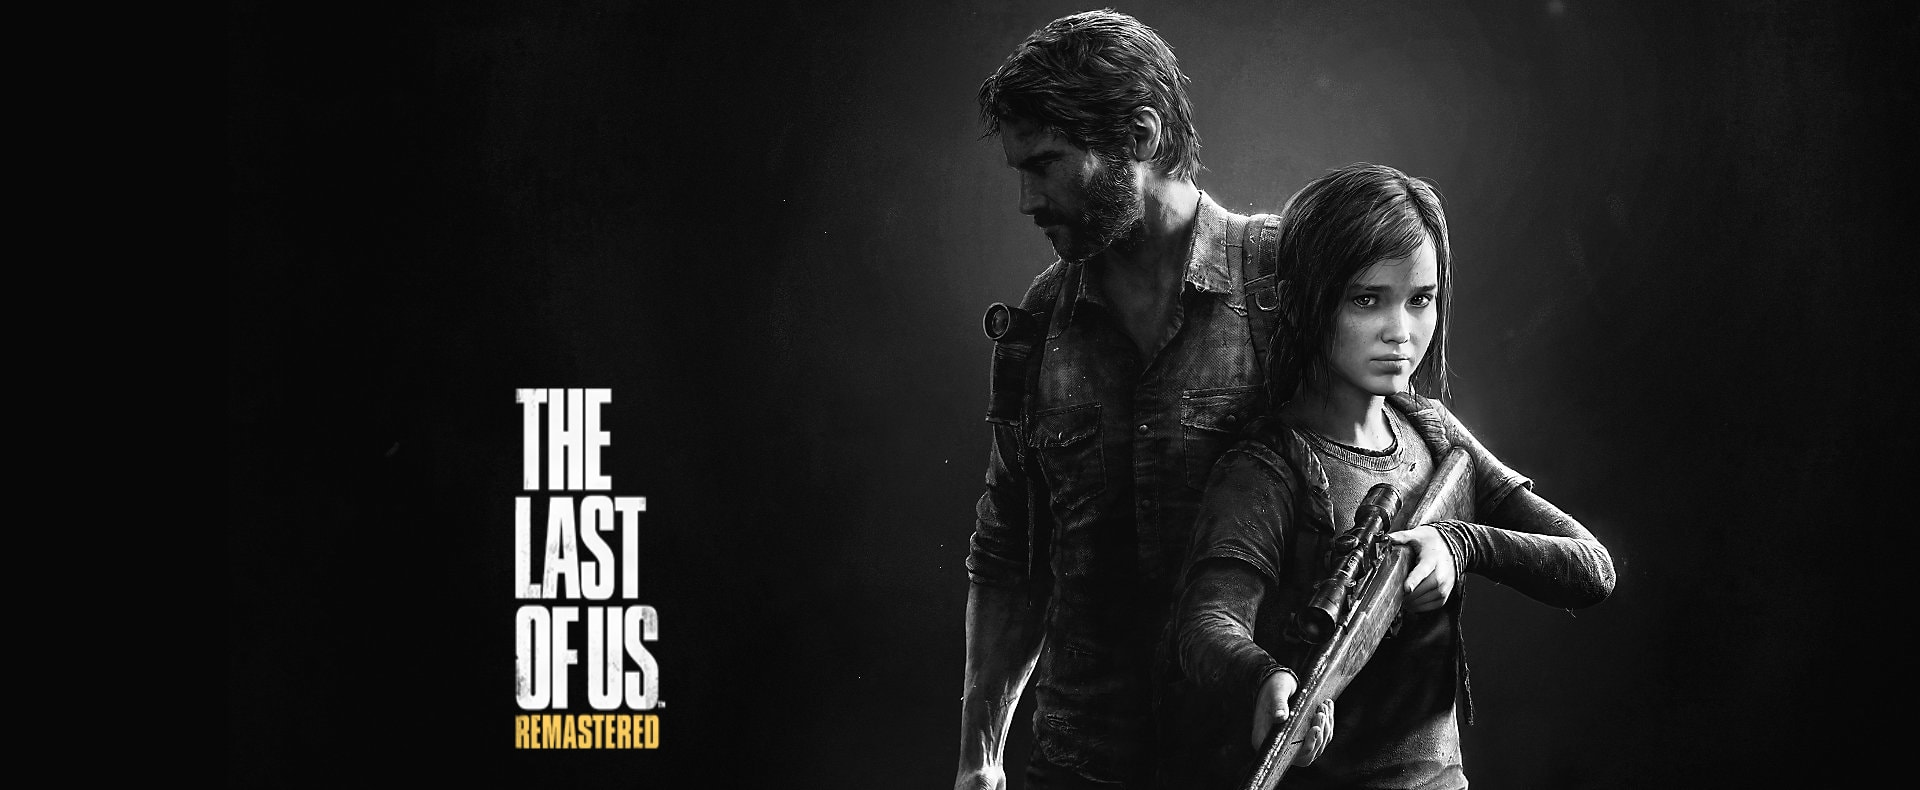 The Last Of Us - One player games